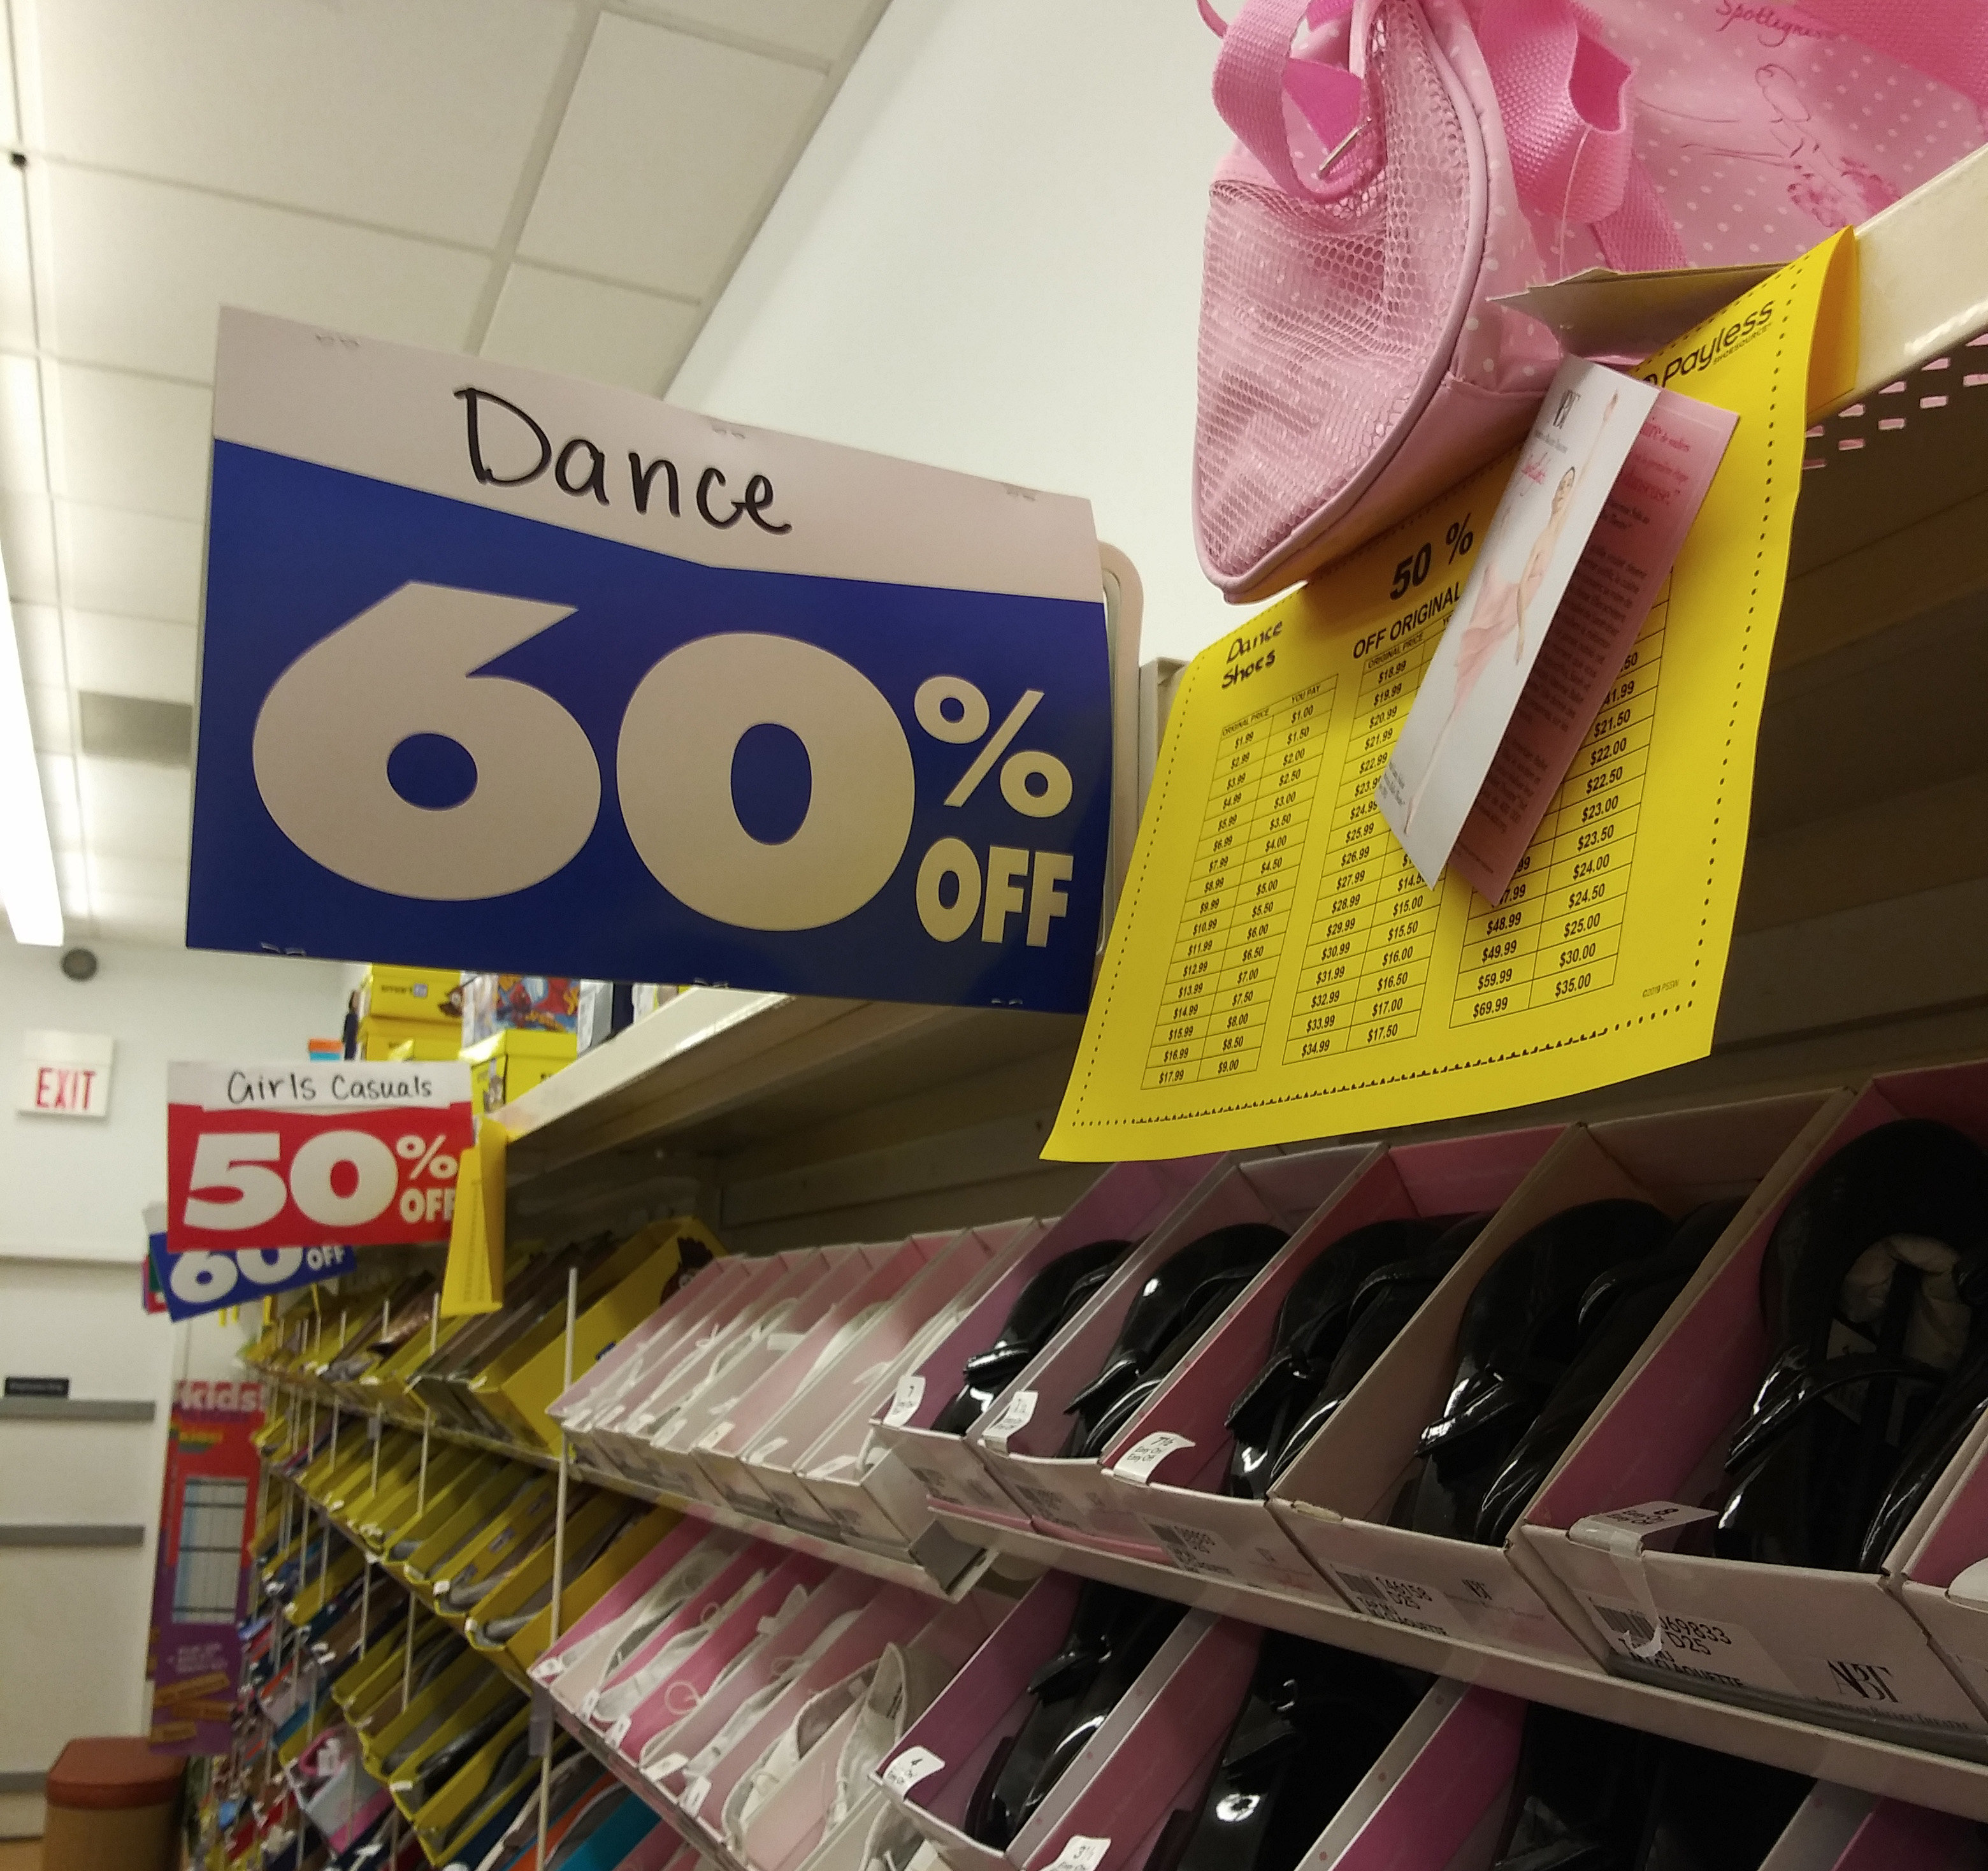 Payless Shoesource Ballet Shoes